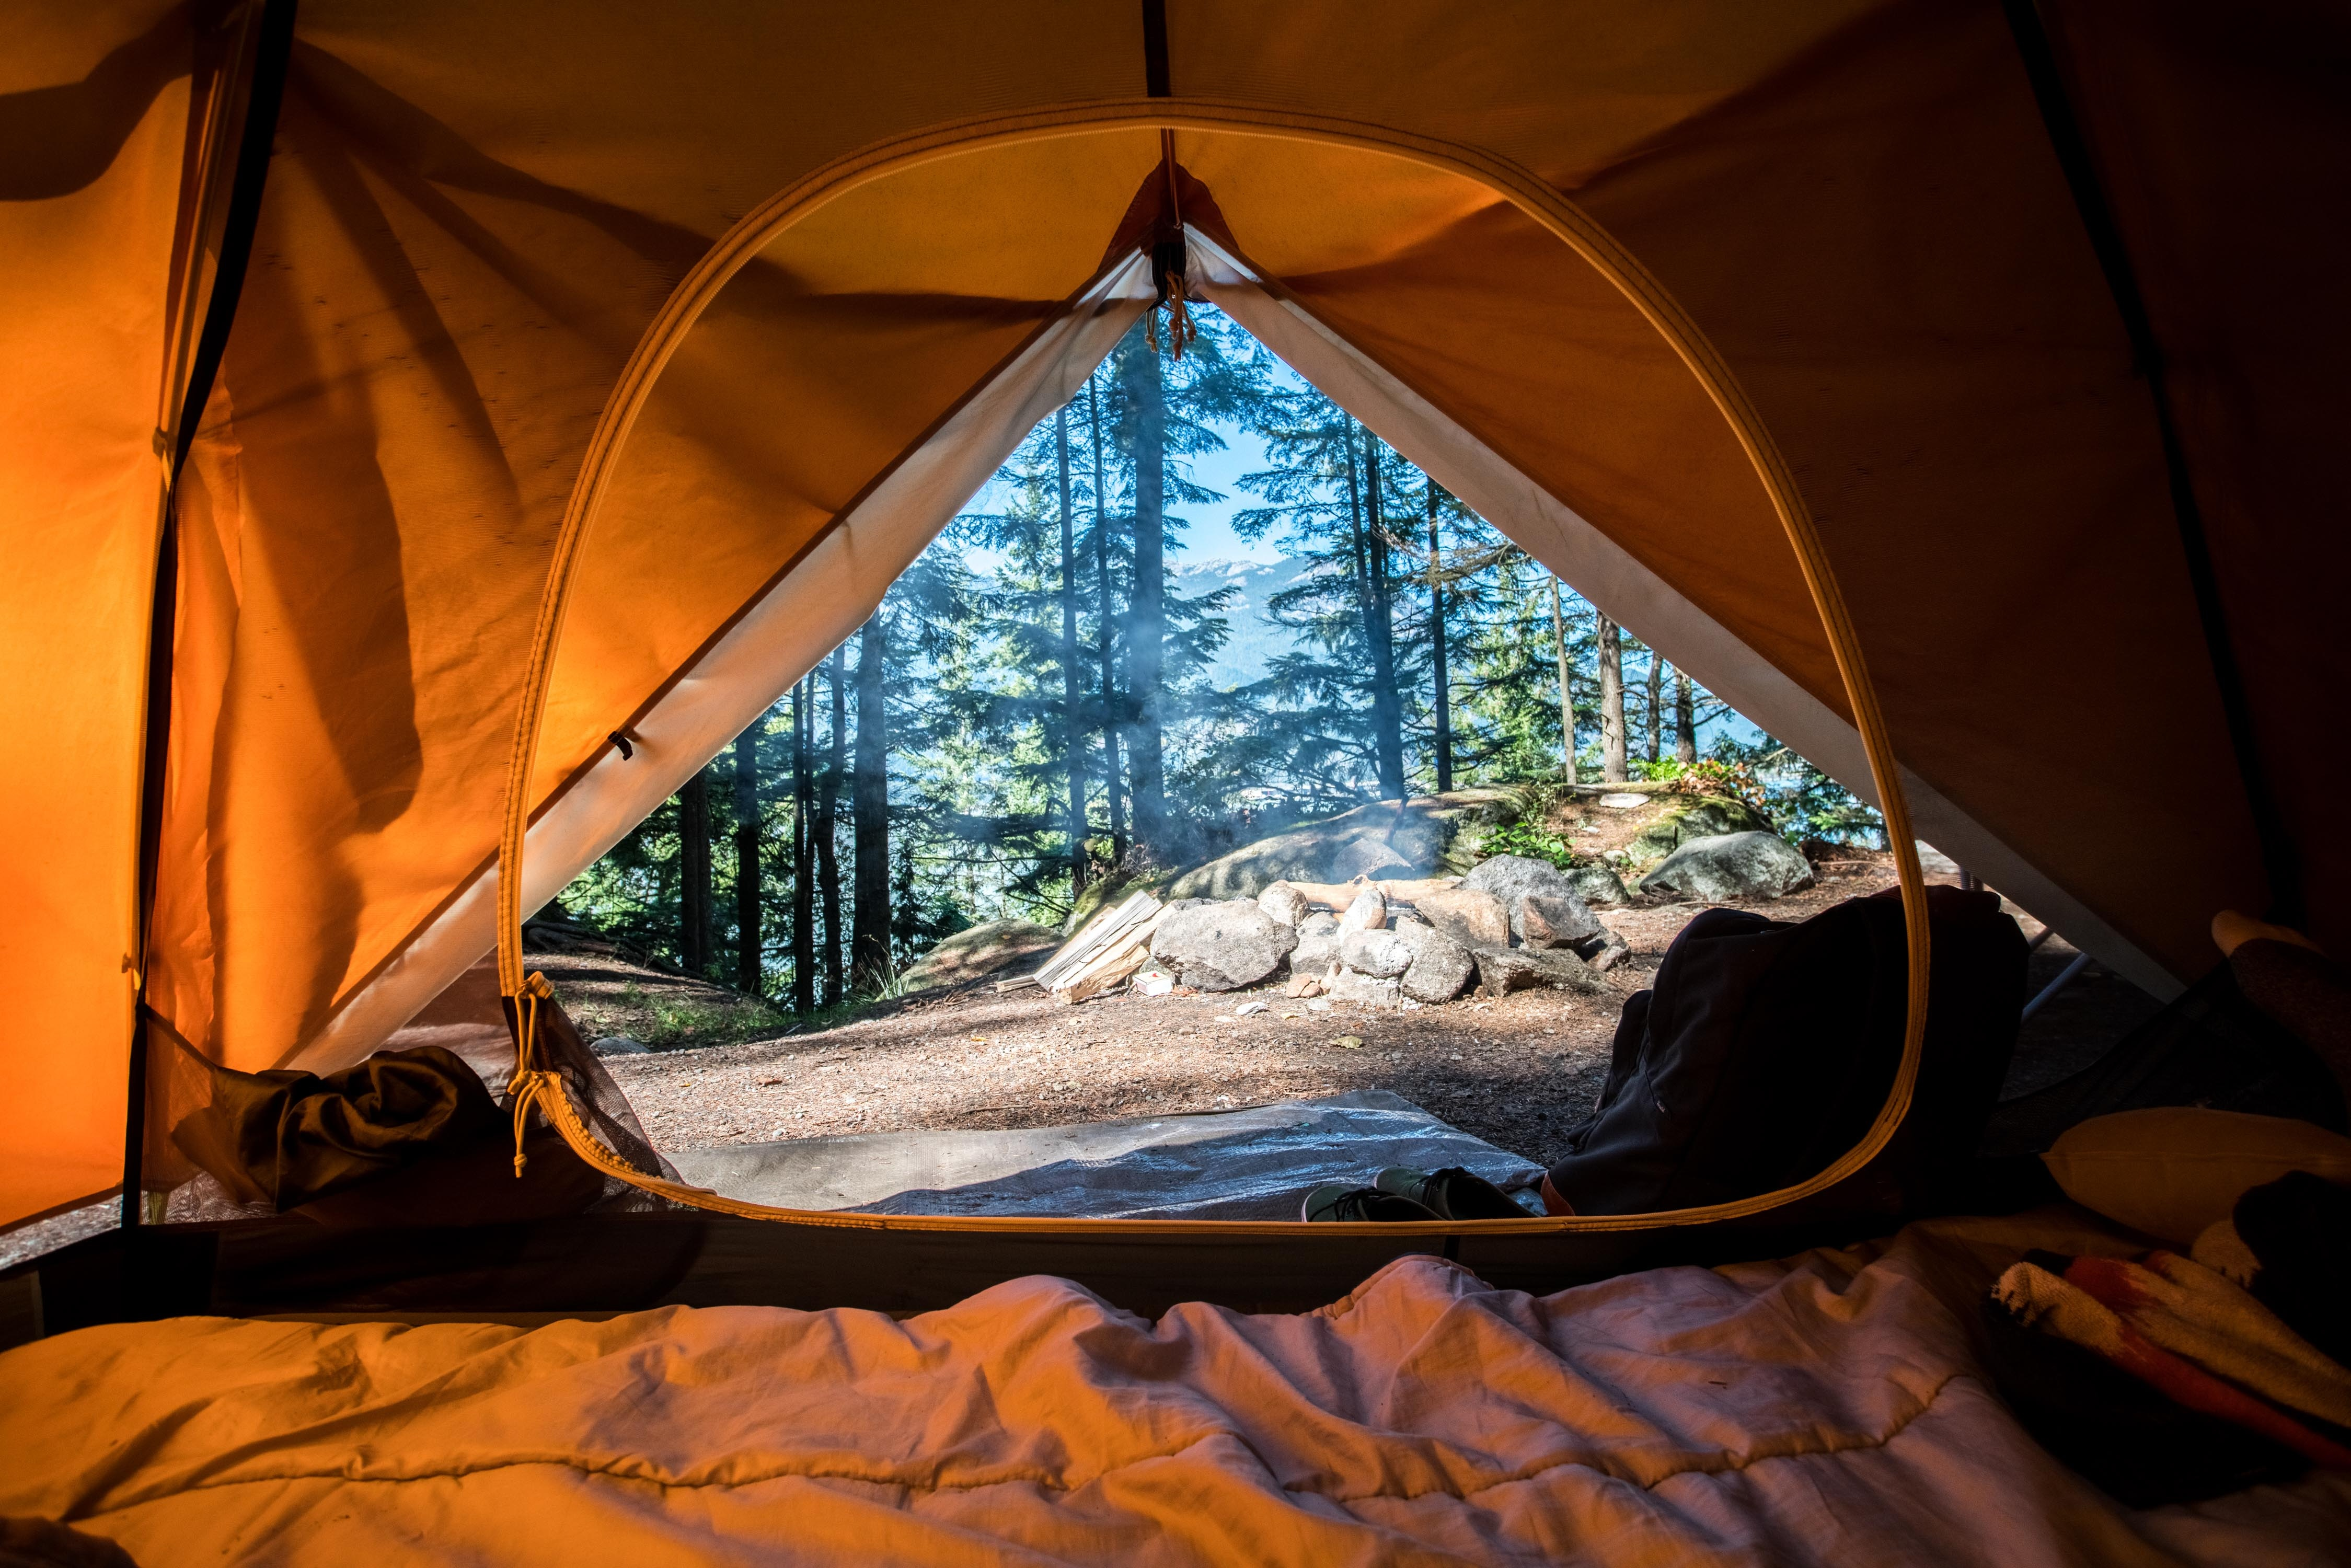 An in-depth review of the best family tents available in 2019.